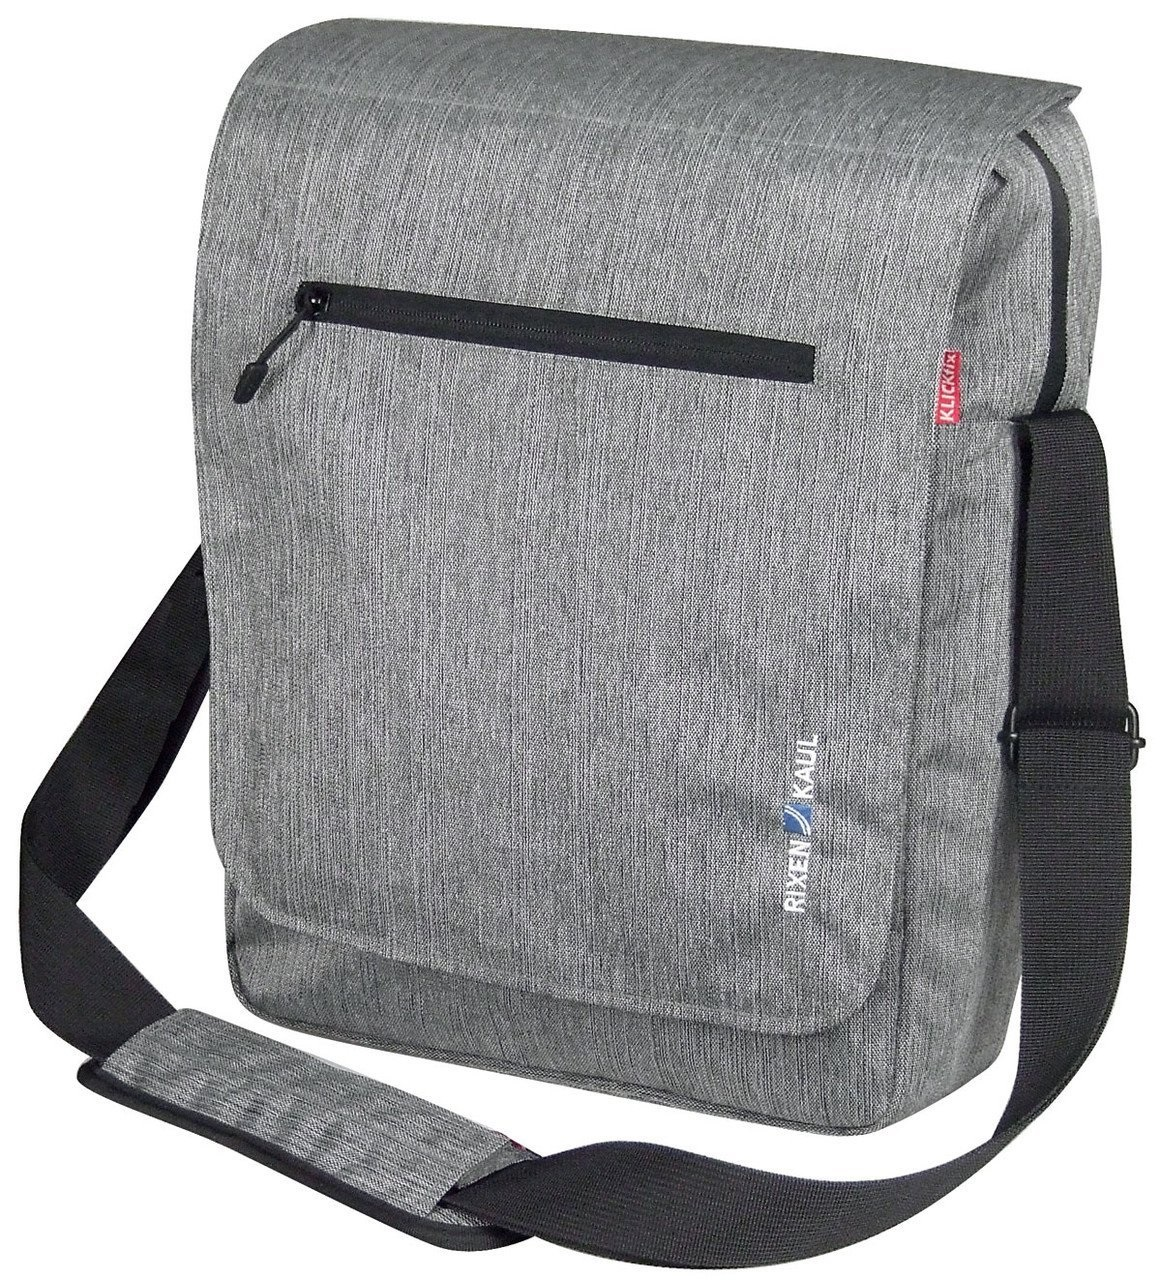 Racktime Smart Bag Schoudertas - Grijs